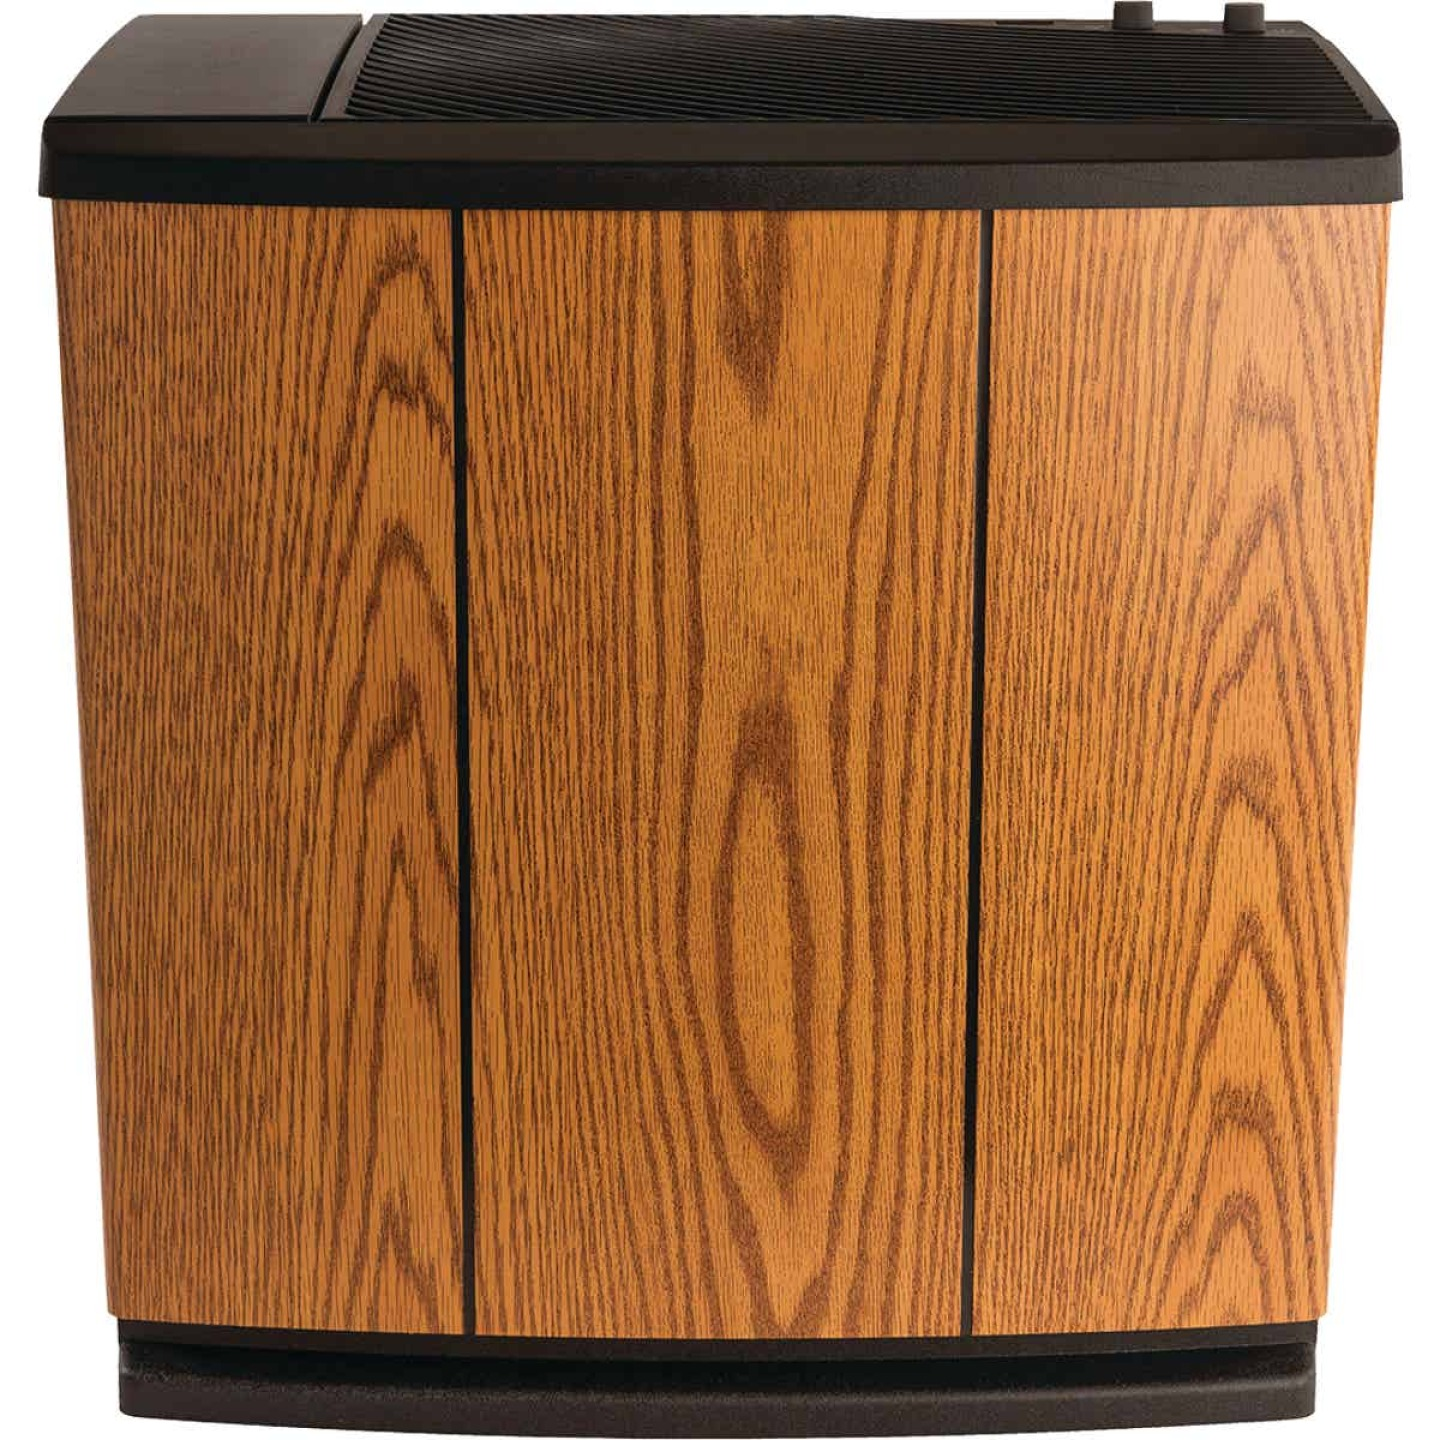 Essick Air 5 Gal. Capacity 3700 Sq. Ft. Console Whole House Humidifier Image 1